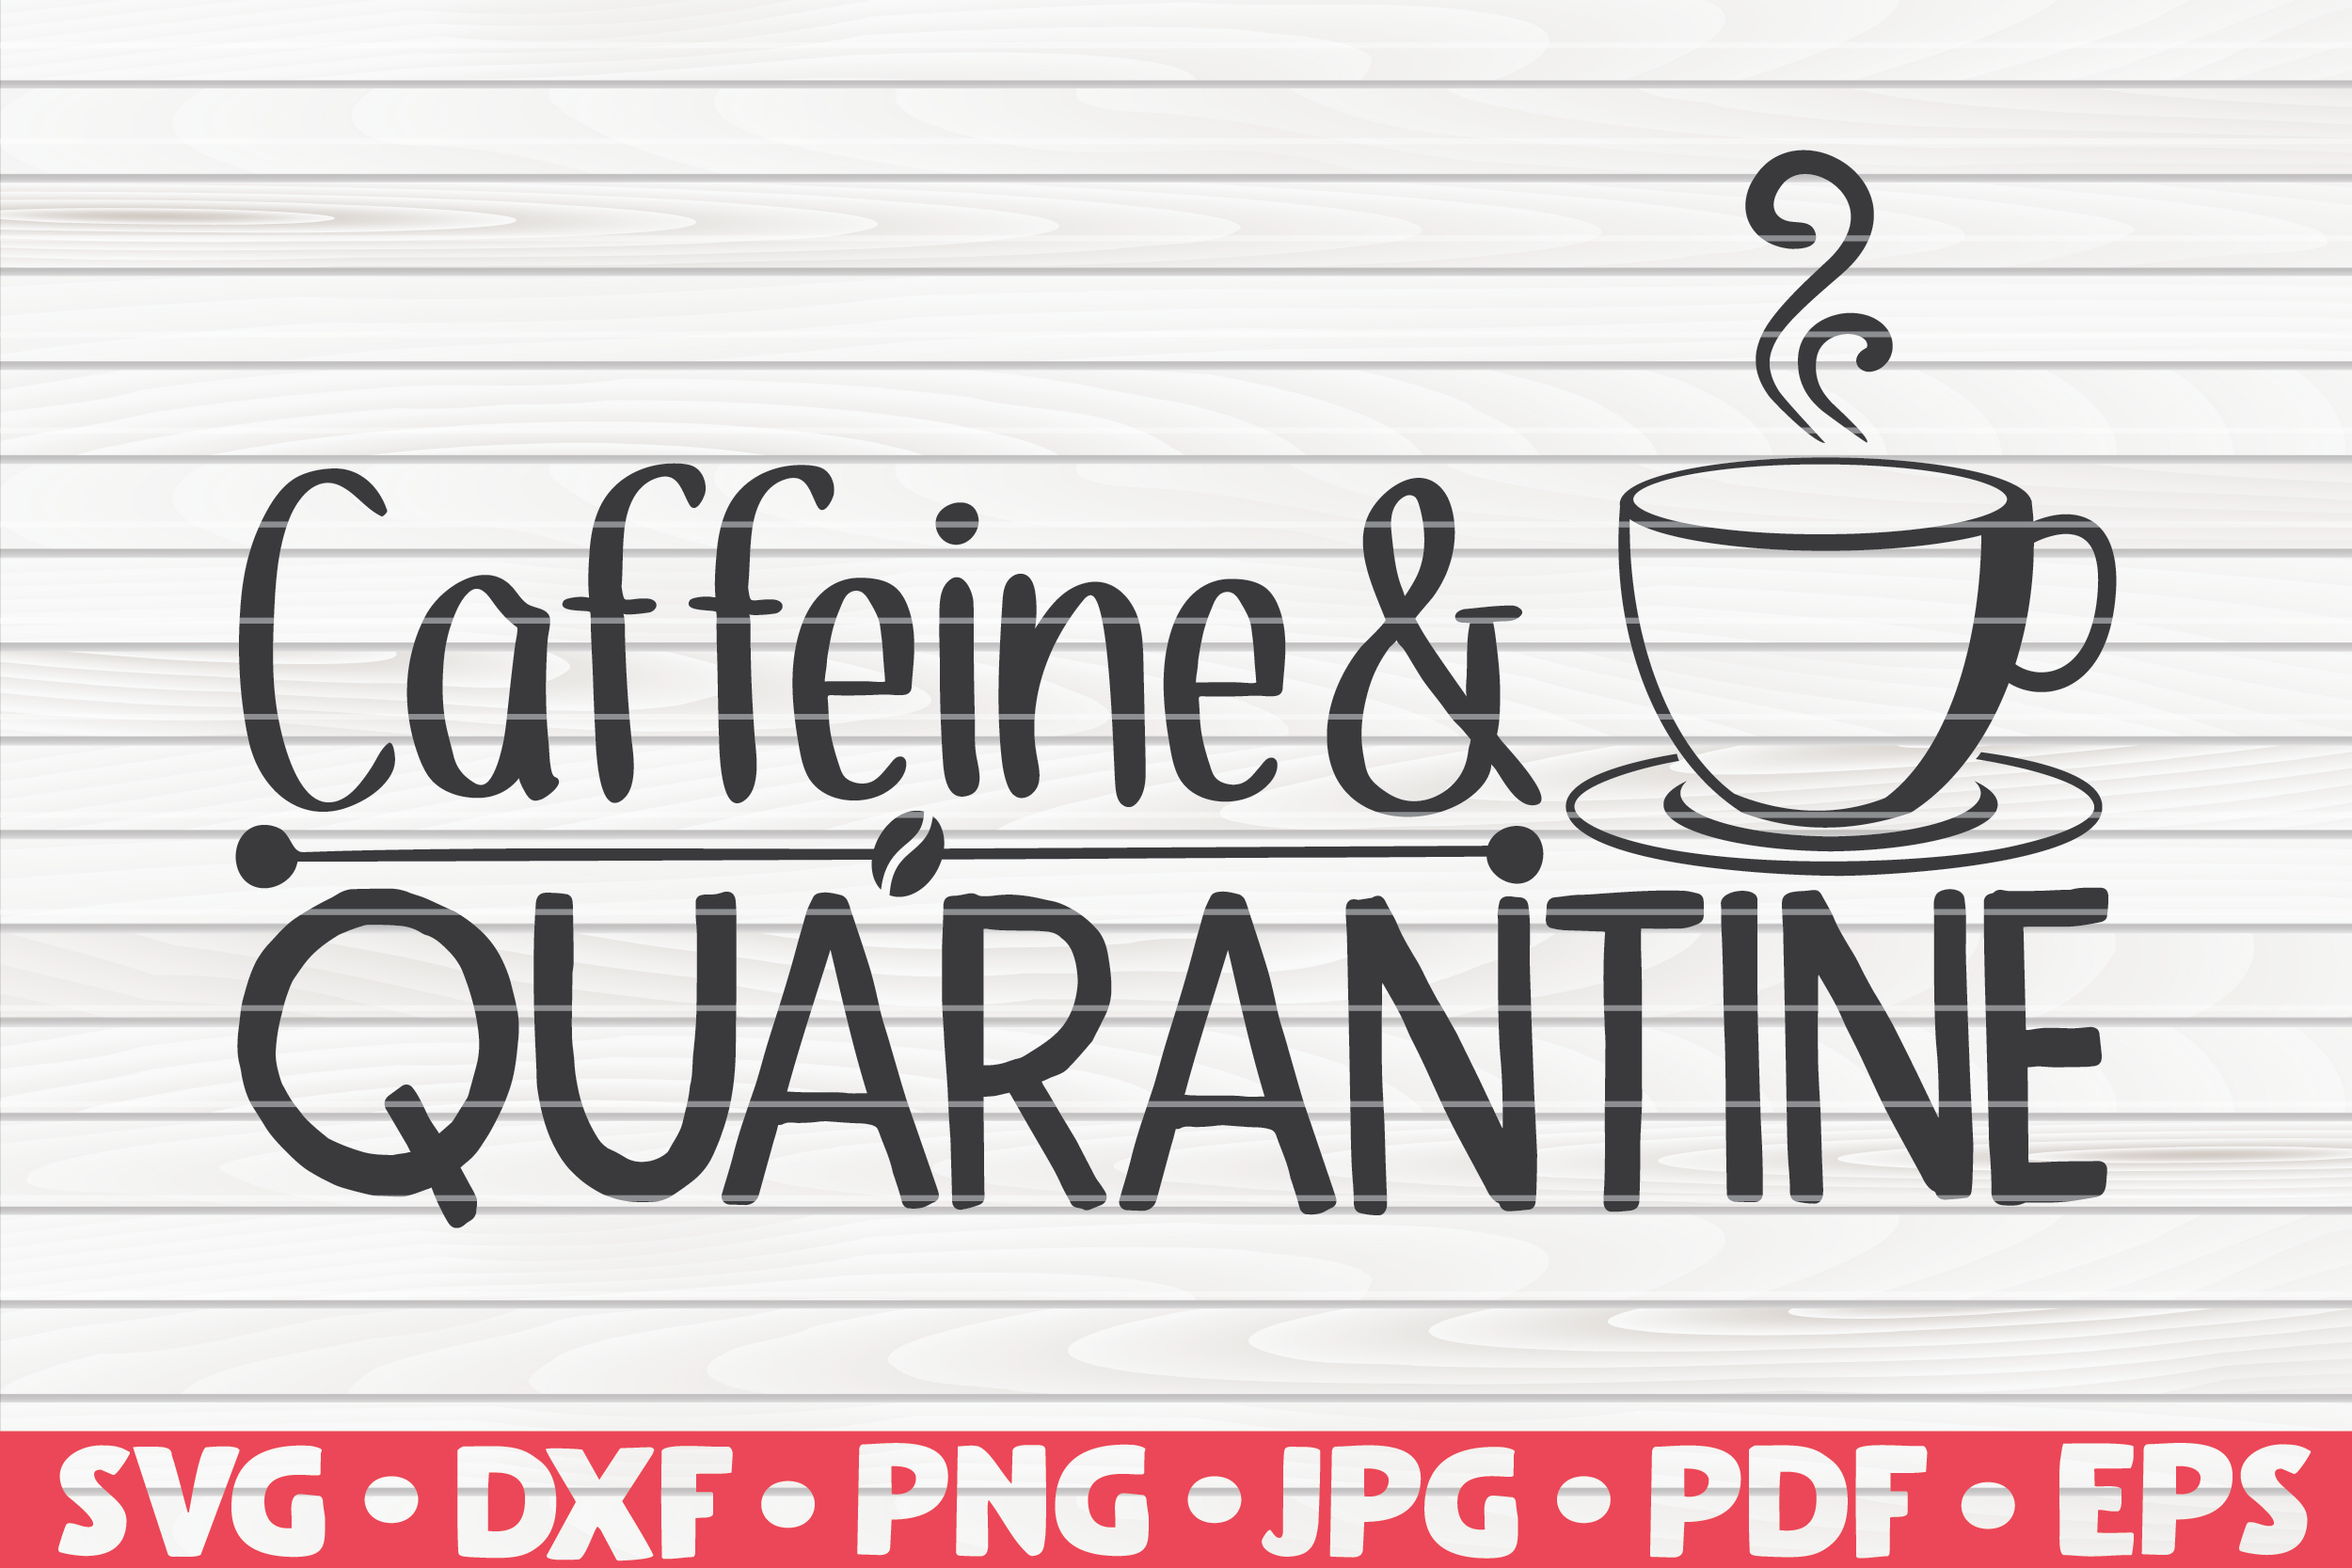 Download Free Caffeine And Quarantine Graphic By Mihaibadea95 Creative Fabrica for Cricut Explore, Silhouette and other cutting machines.